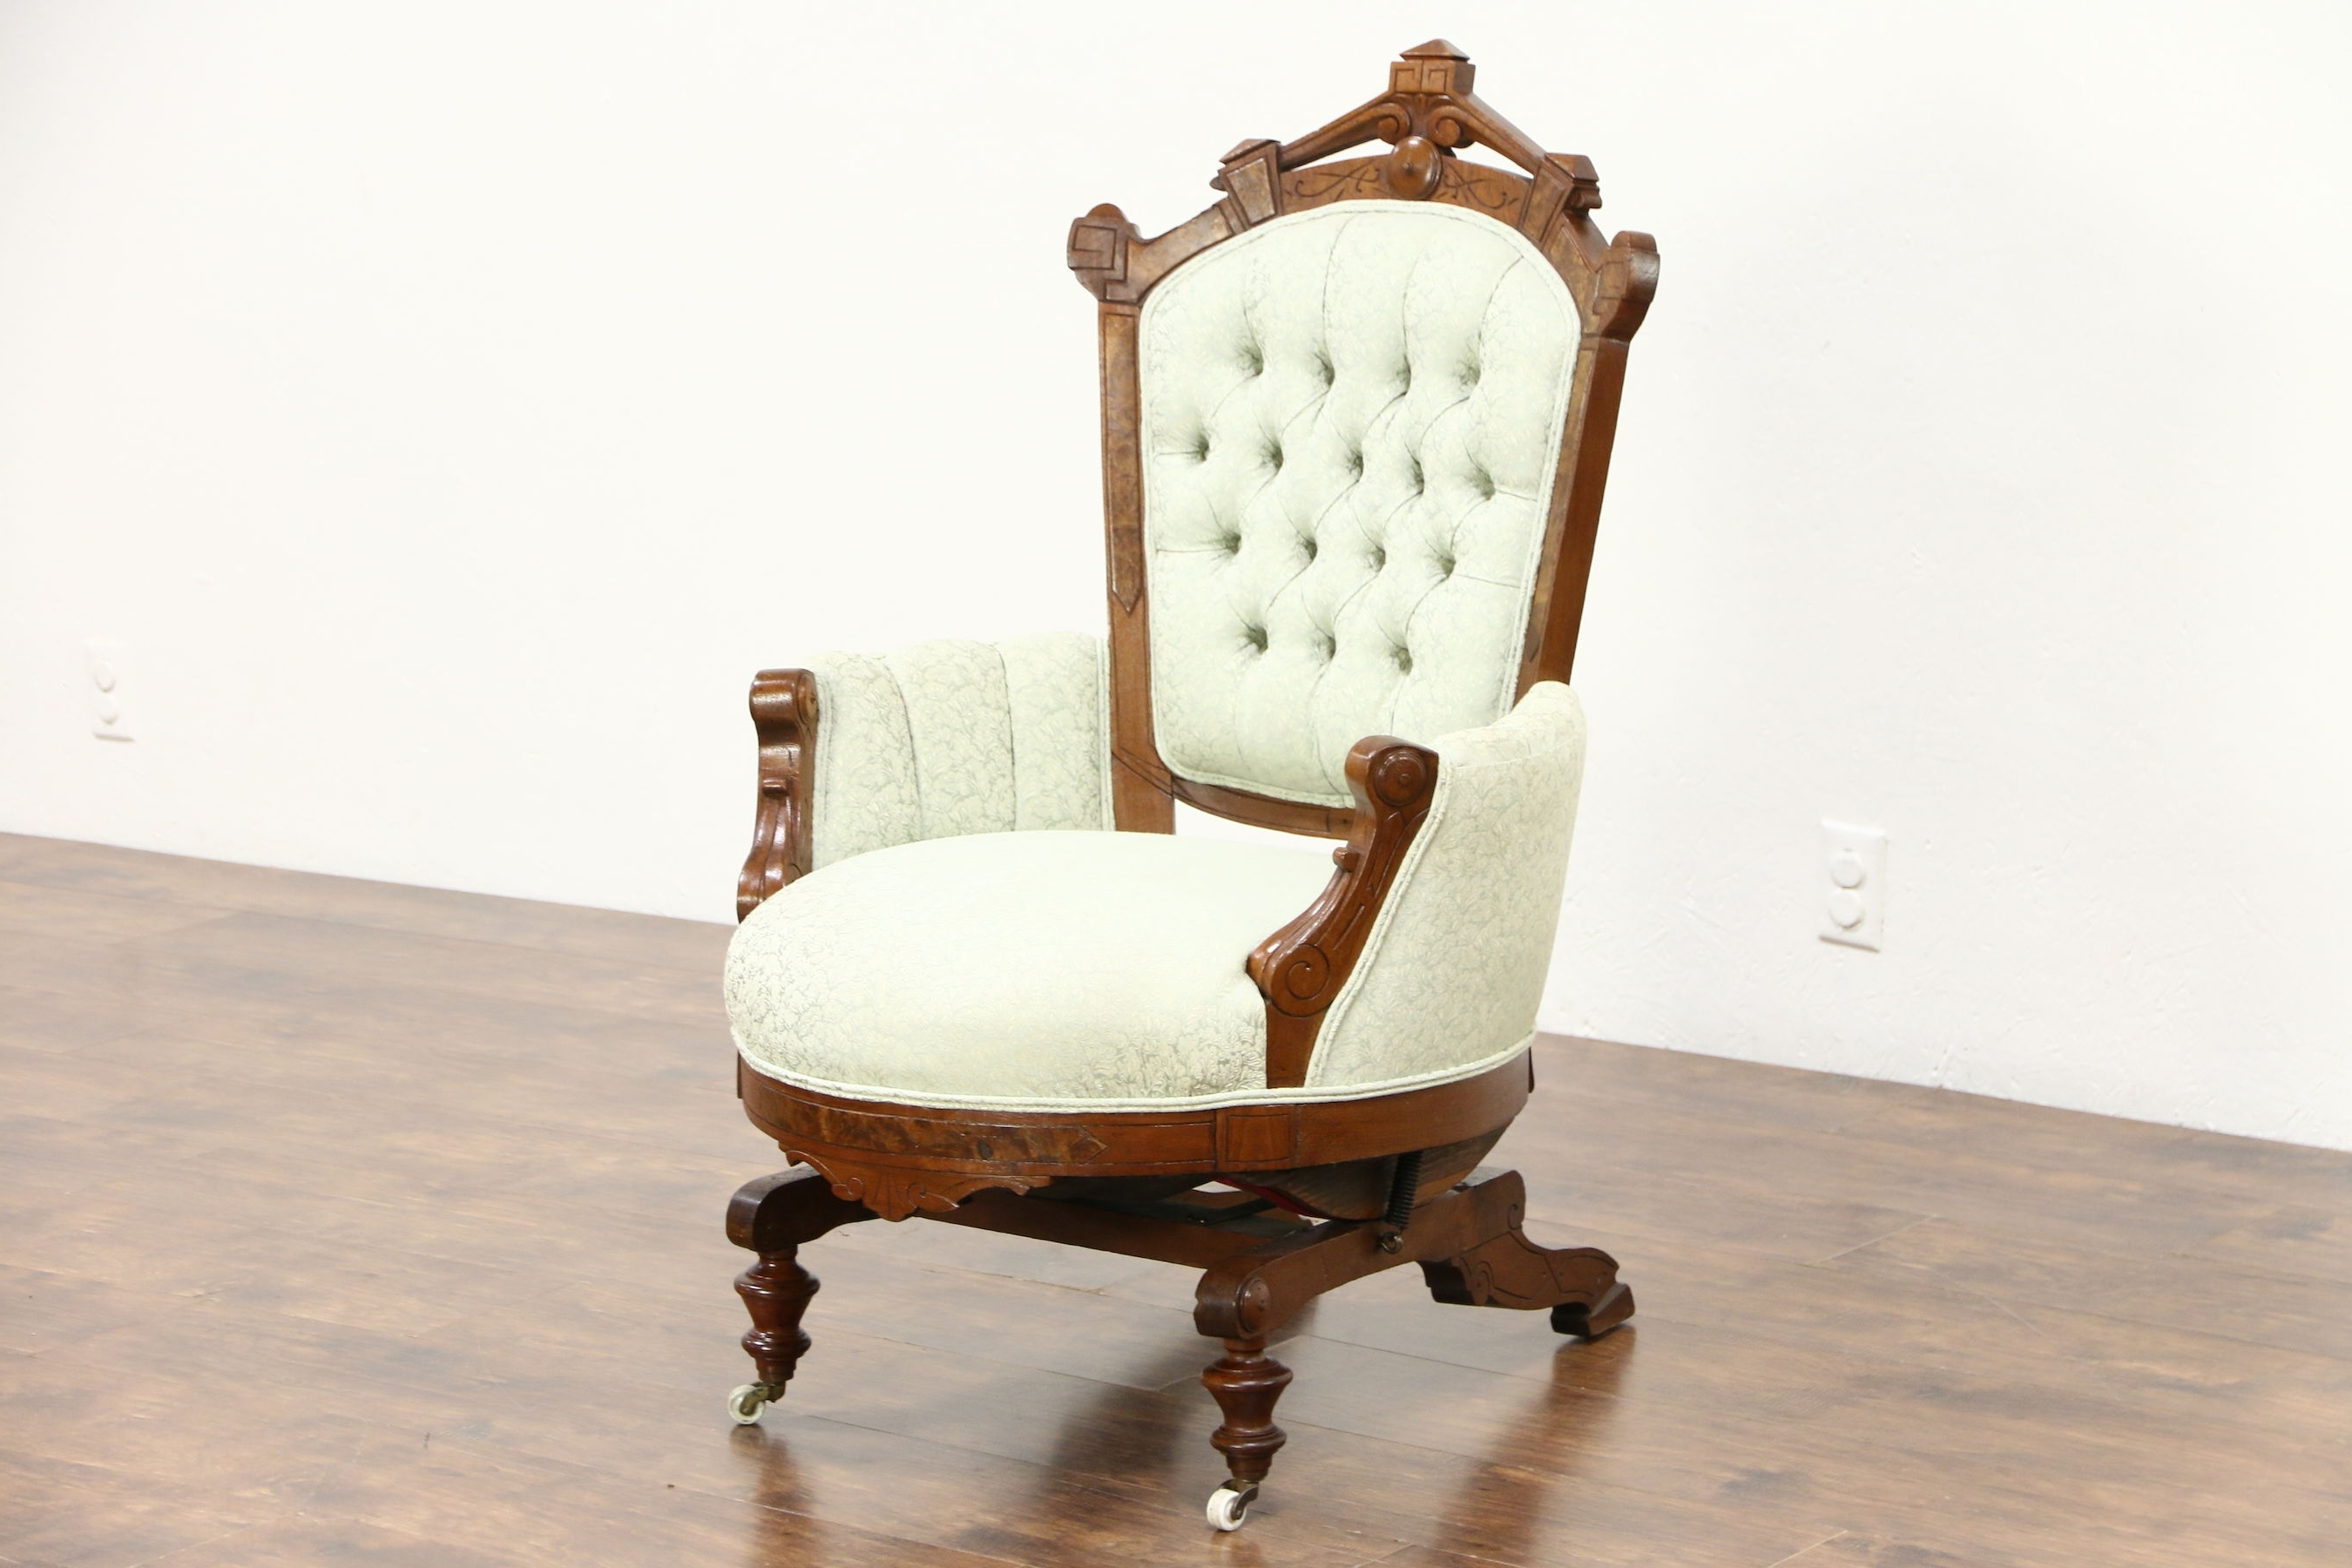 Sold – Victorian Eastlake Walnut Antique Stationary Rocker Or Pertaining To Well Liked Victorian Rocking Chairs (View 14 of 20)